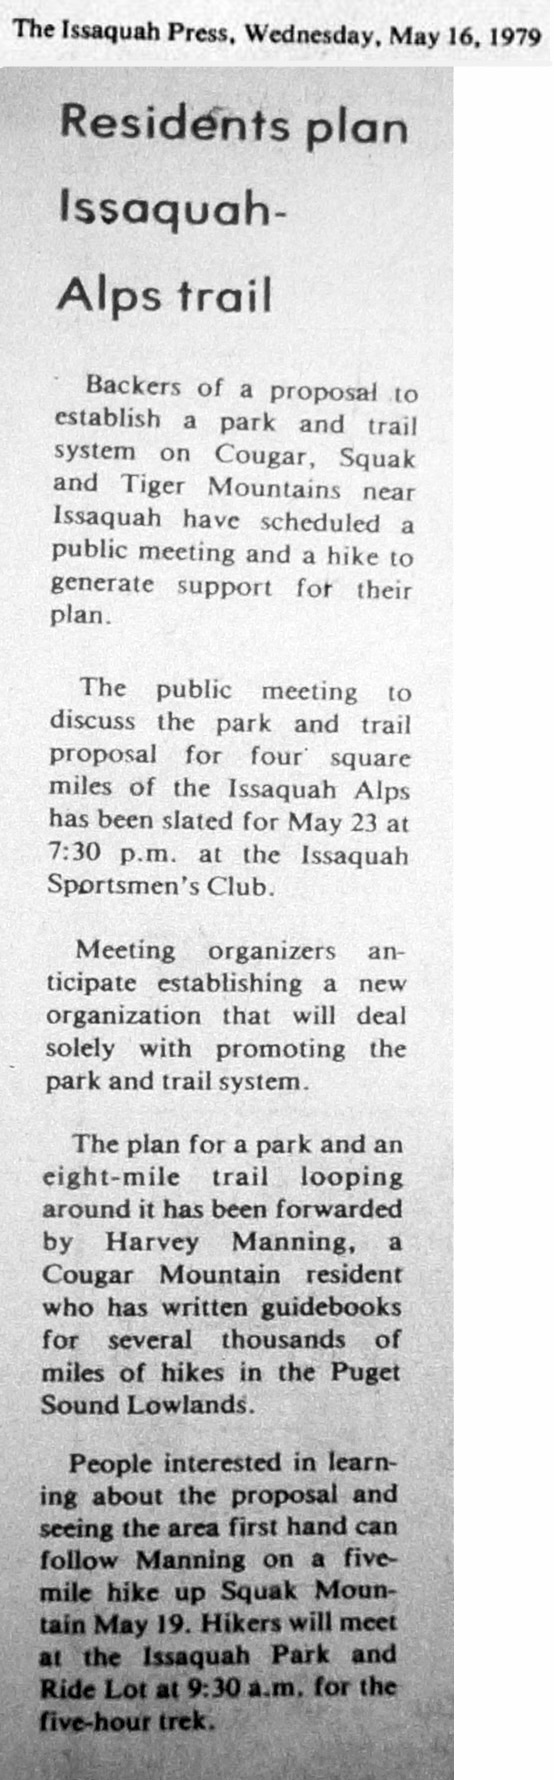 1979-05-16 Issaquah Press - Issaquah Alps Trails Club First Meeting - with dateline.jpg